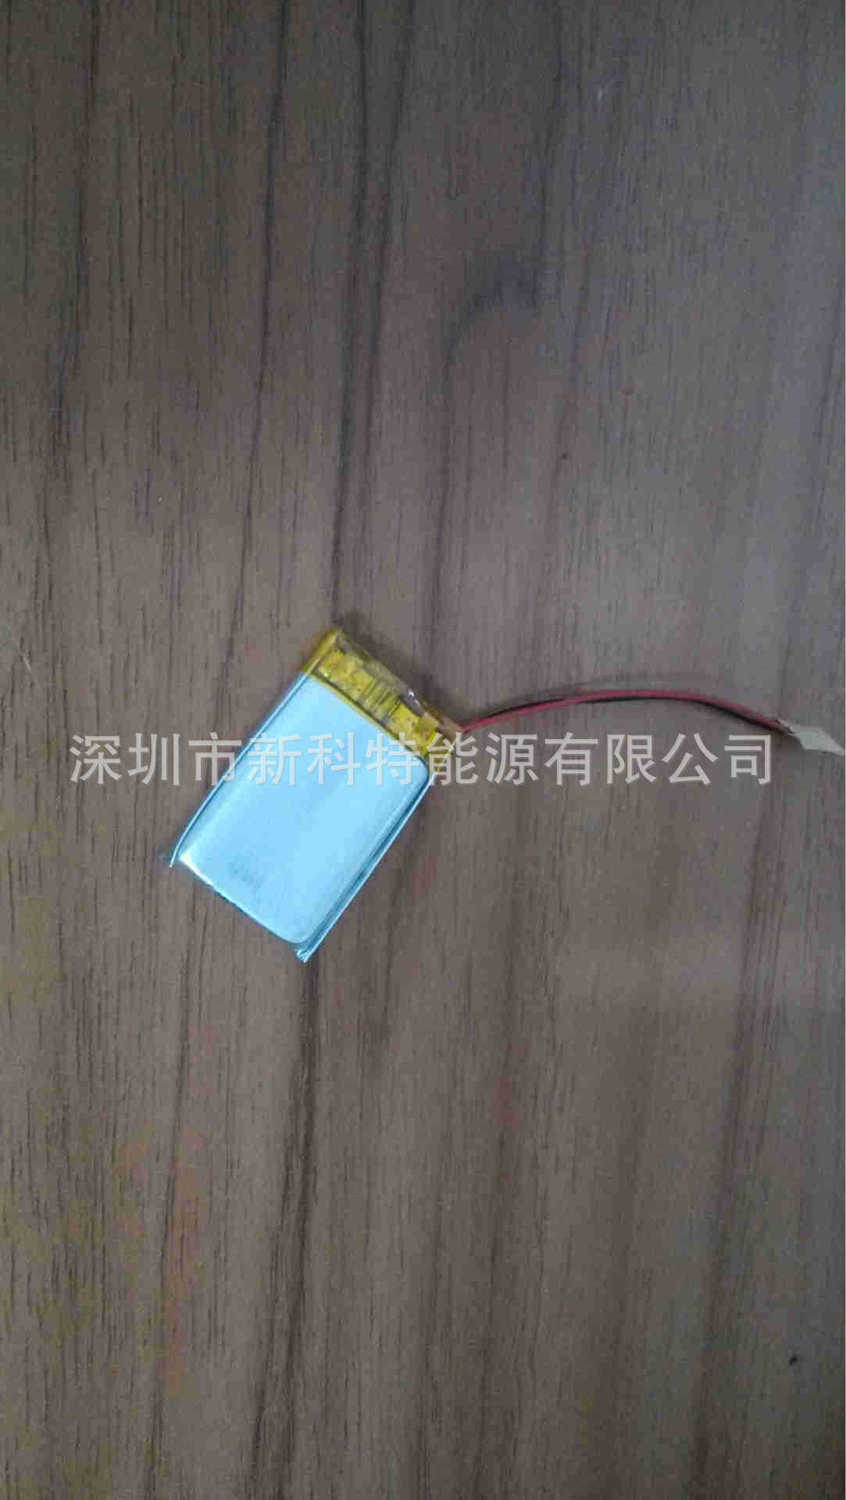 Supply LP401119 consumer electronics audio polymer battery Battery